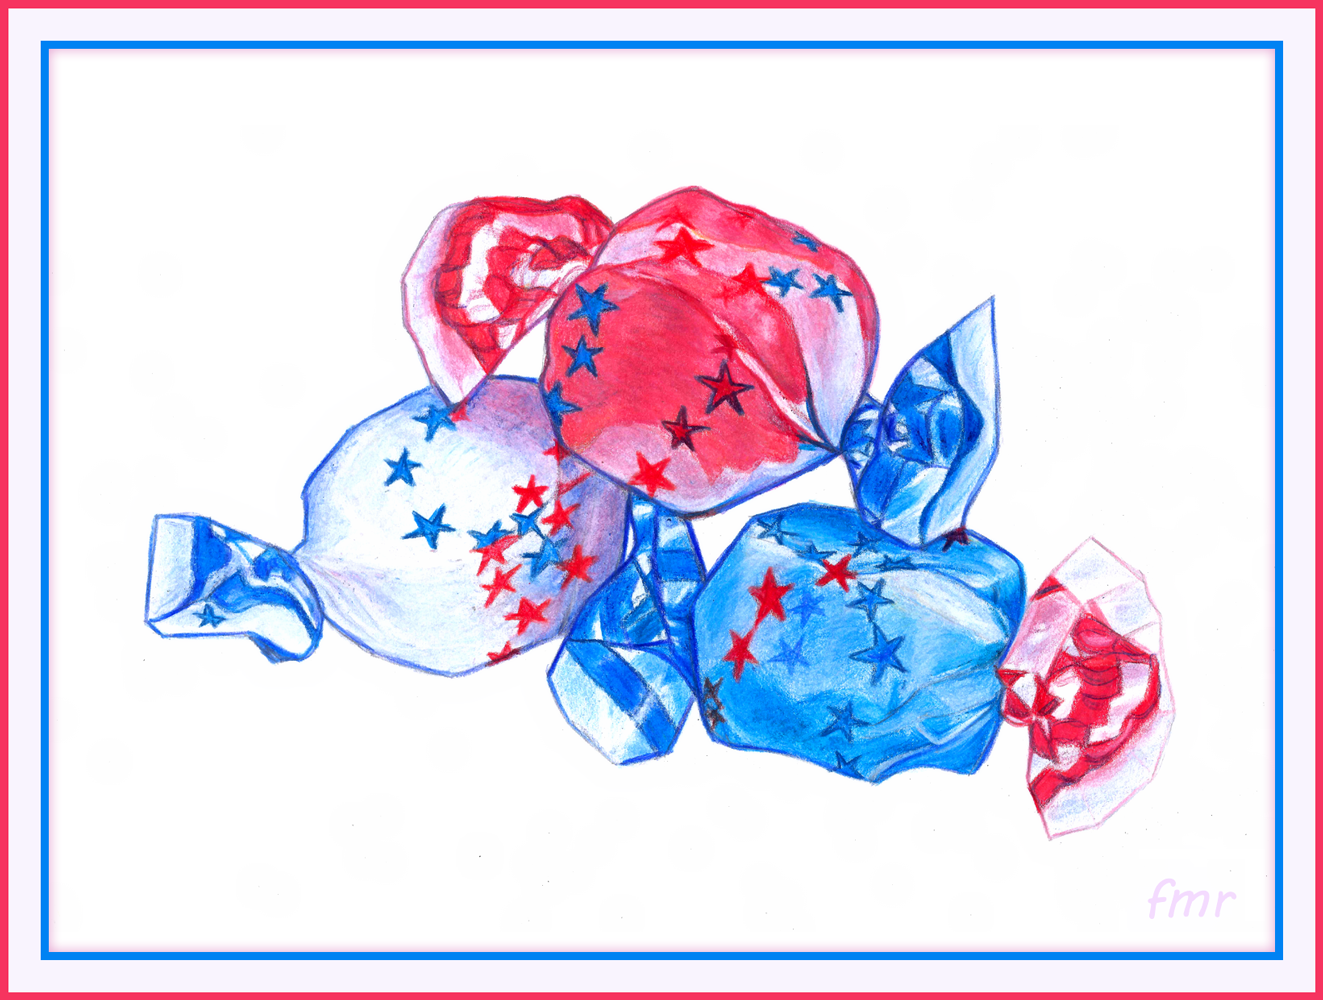 Patriotic Sweets by Saltwater